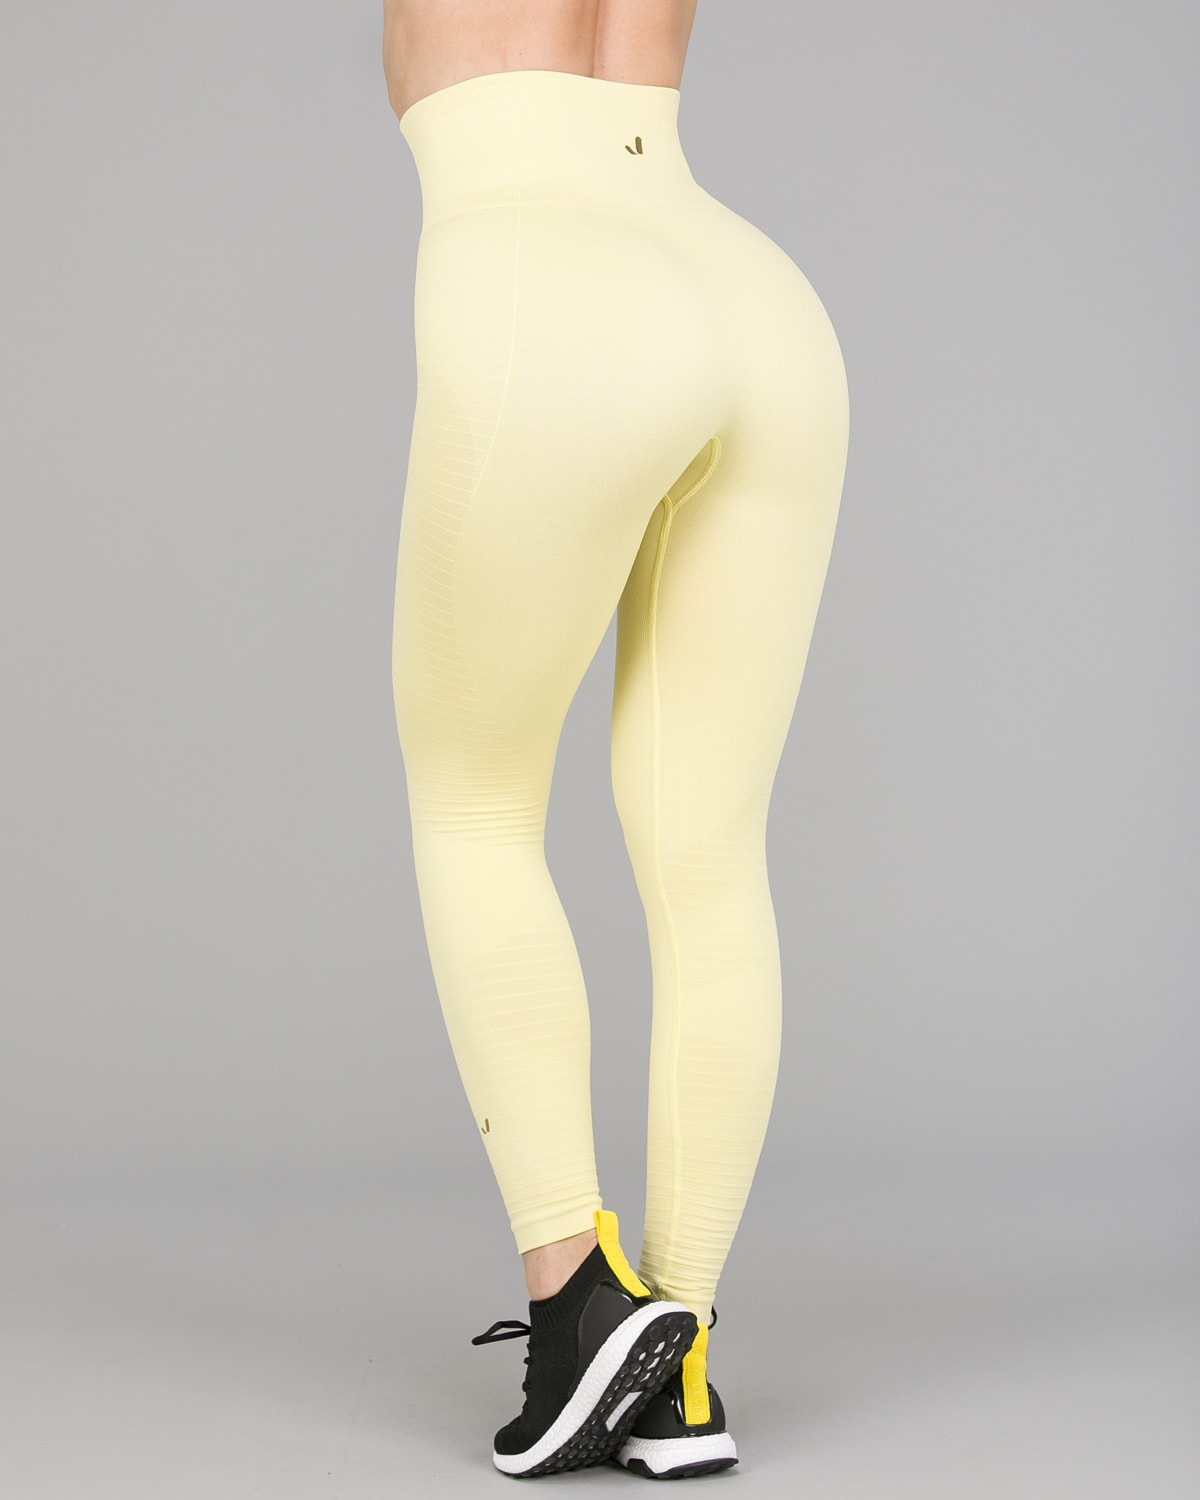 Jerf Gela 2.0 Tights Yellow Pastel11